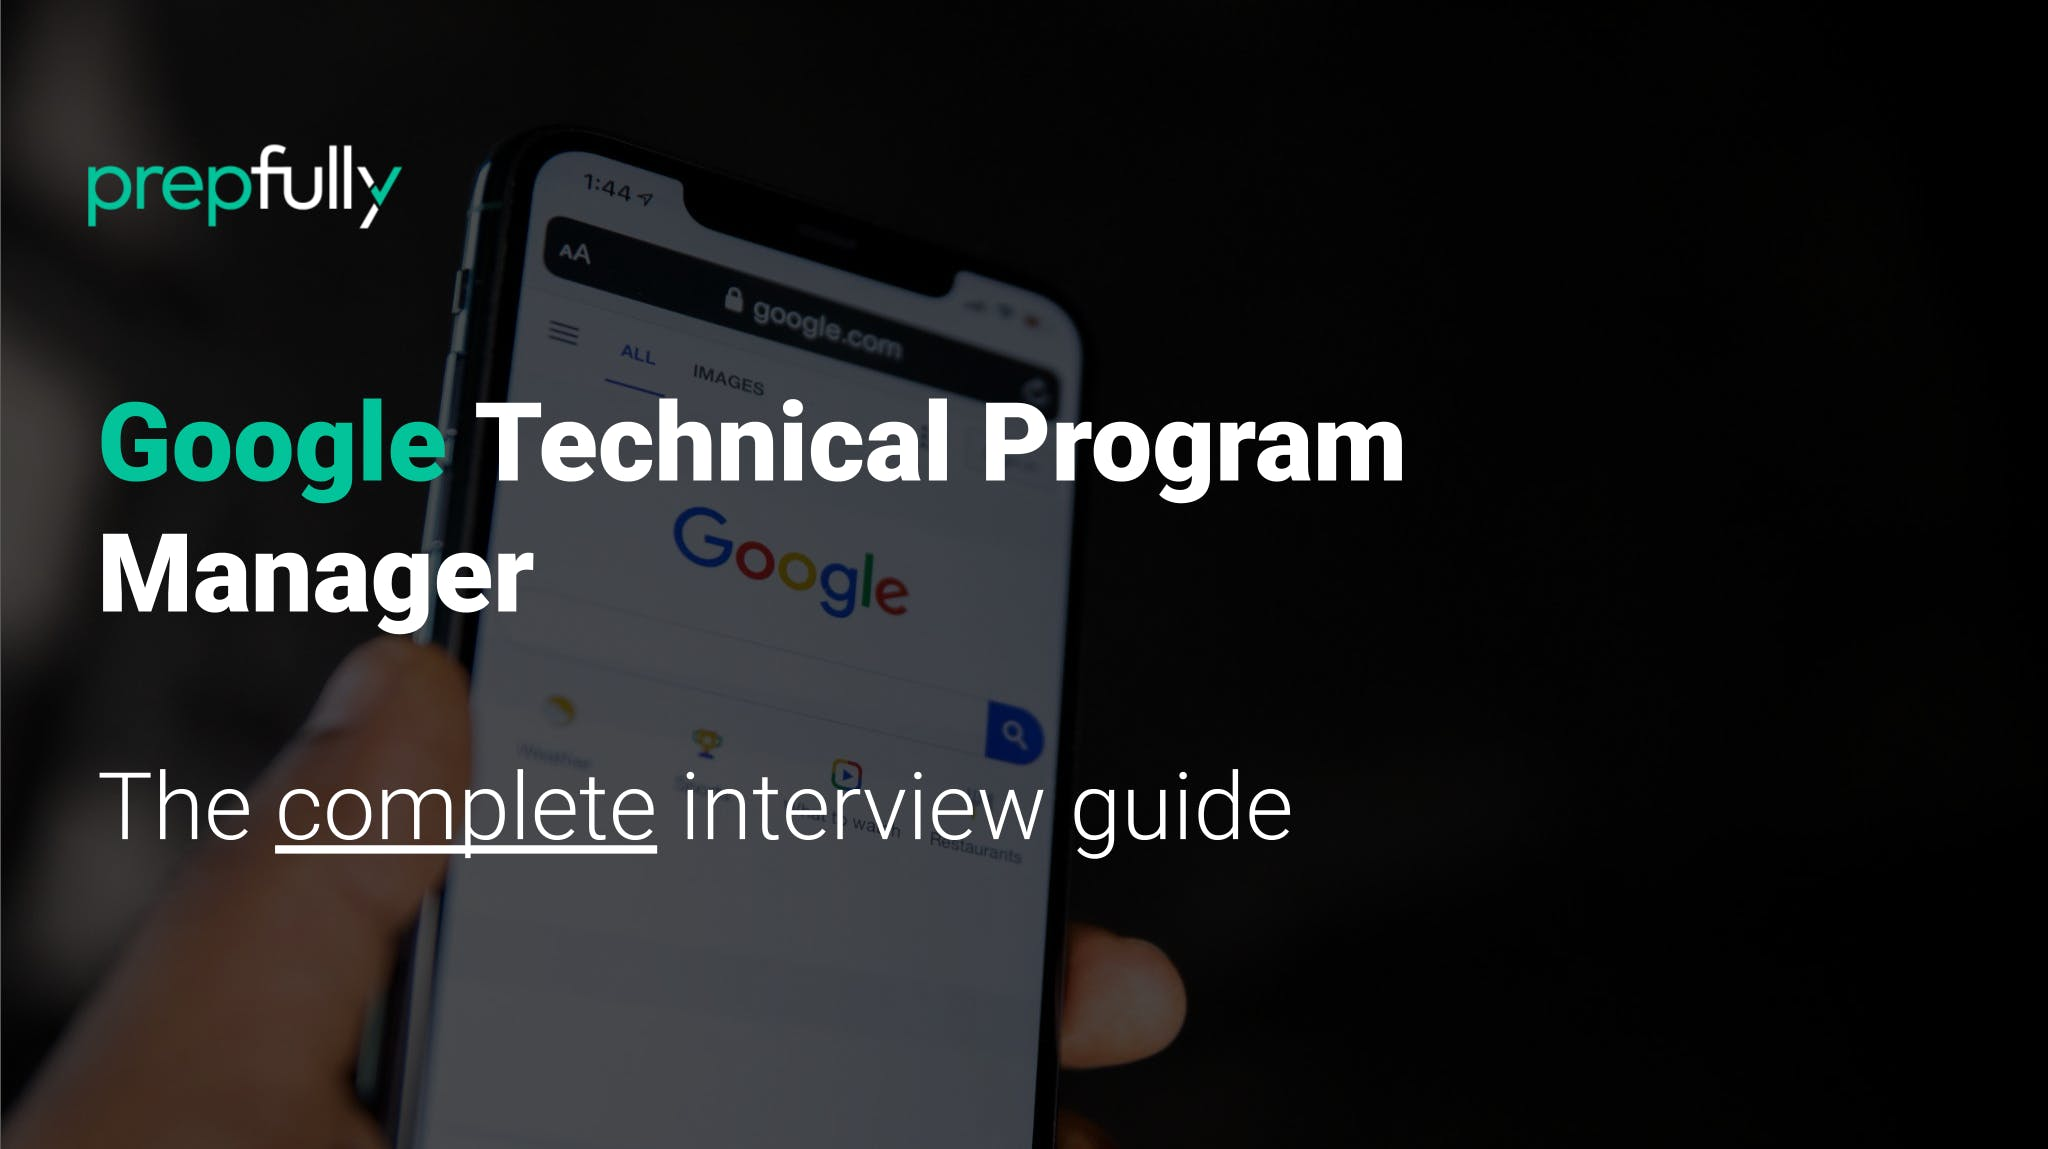 Interview guide for Google Technical Program Manager